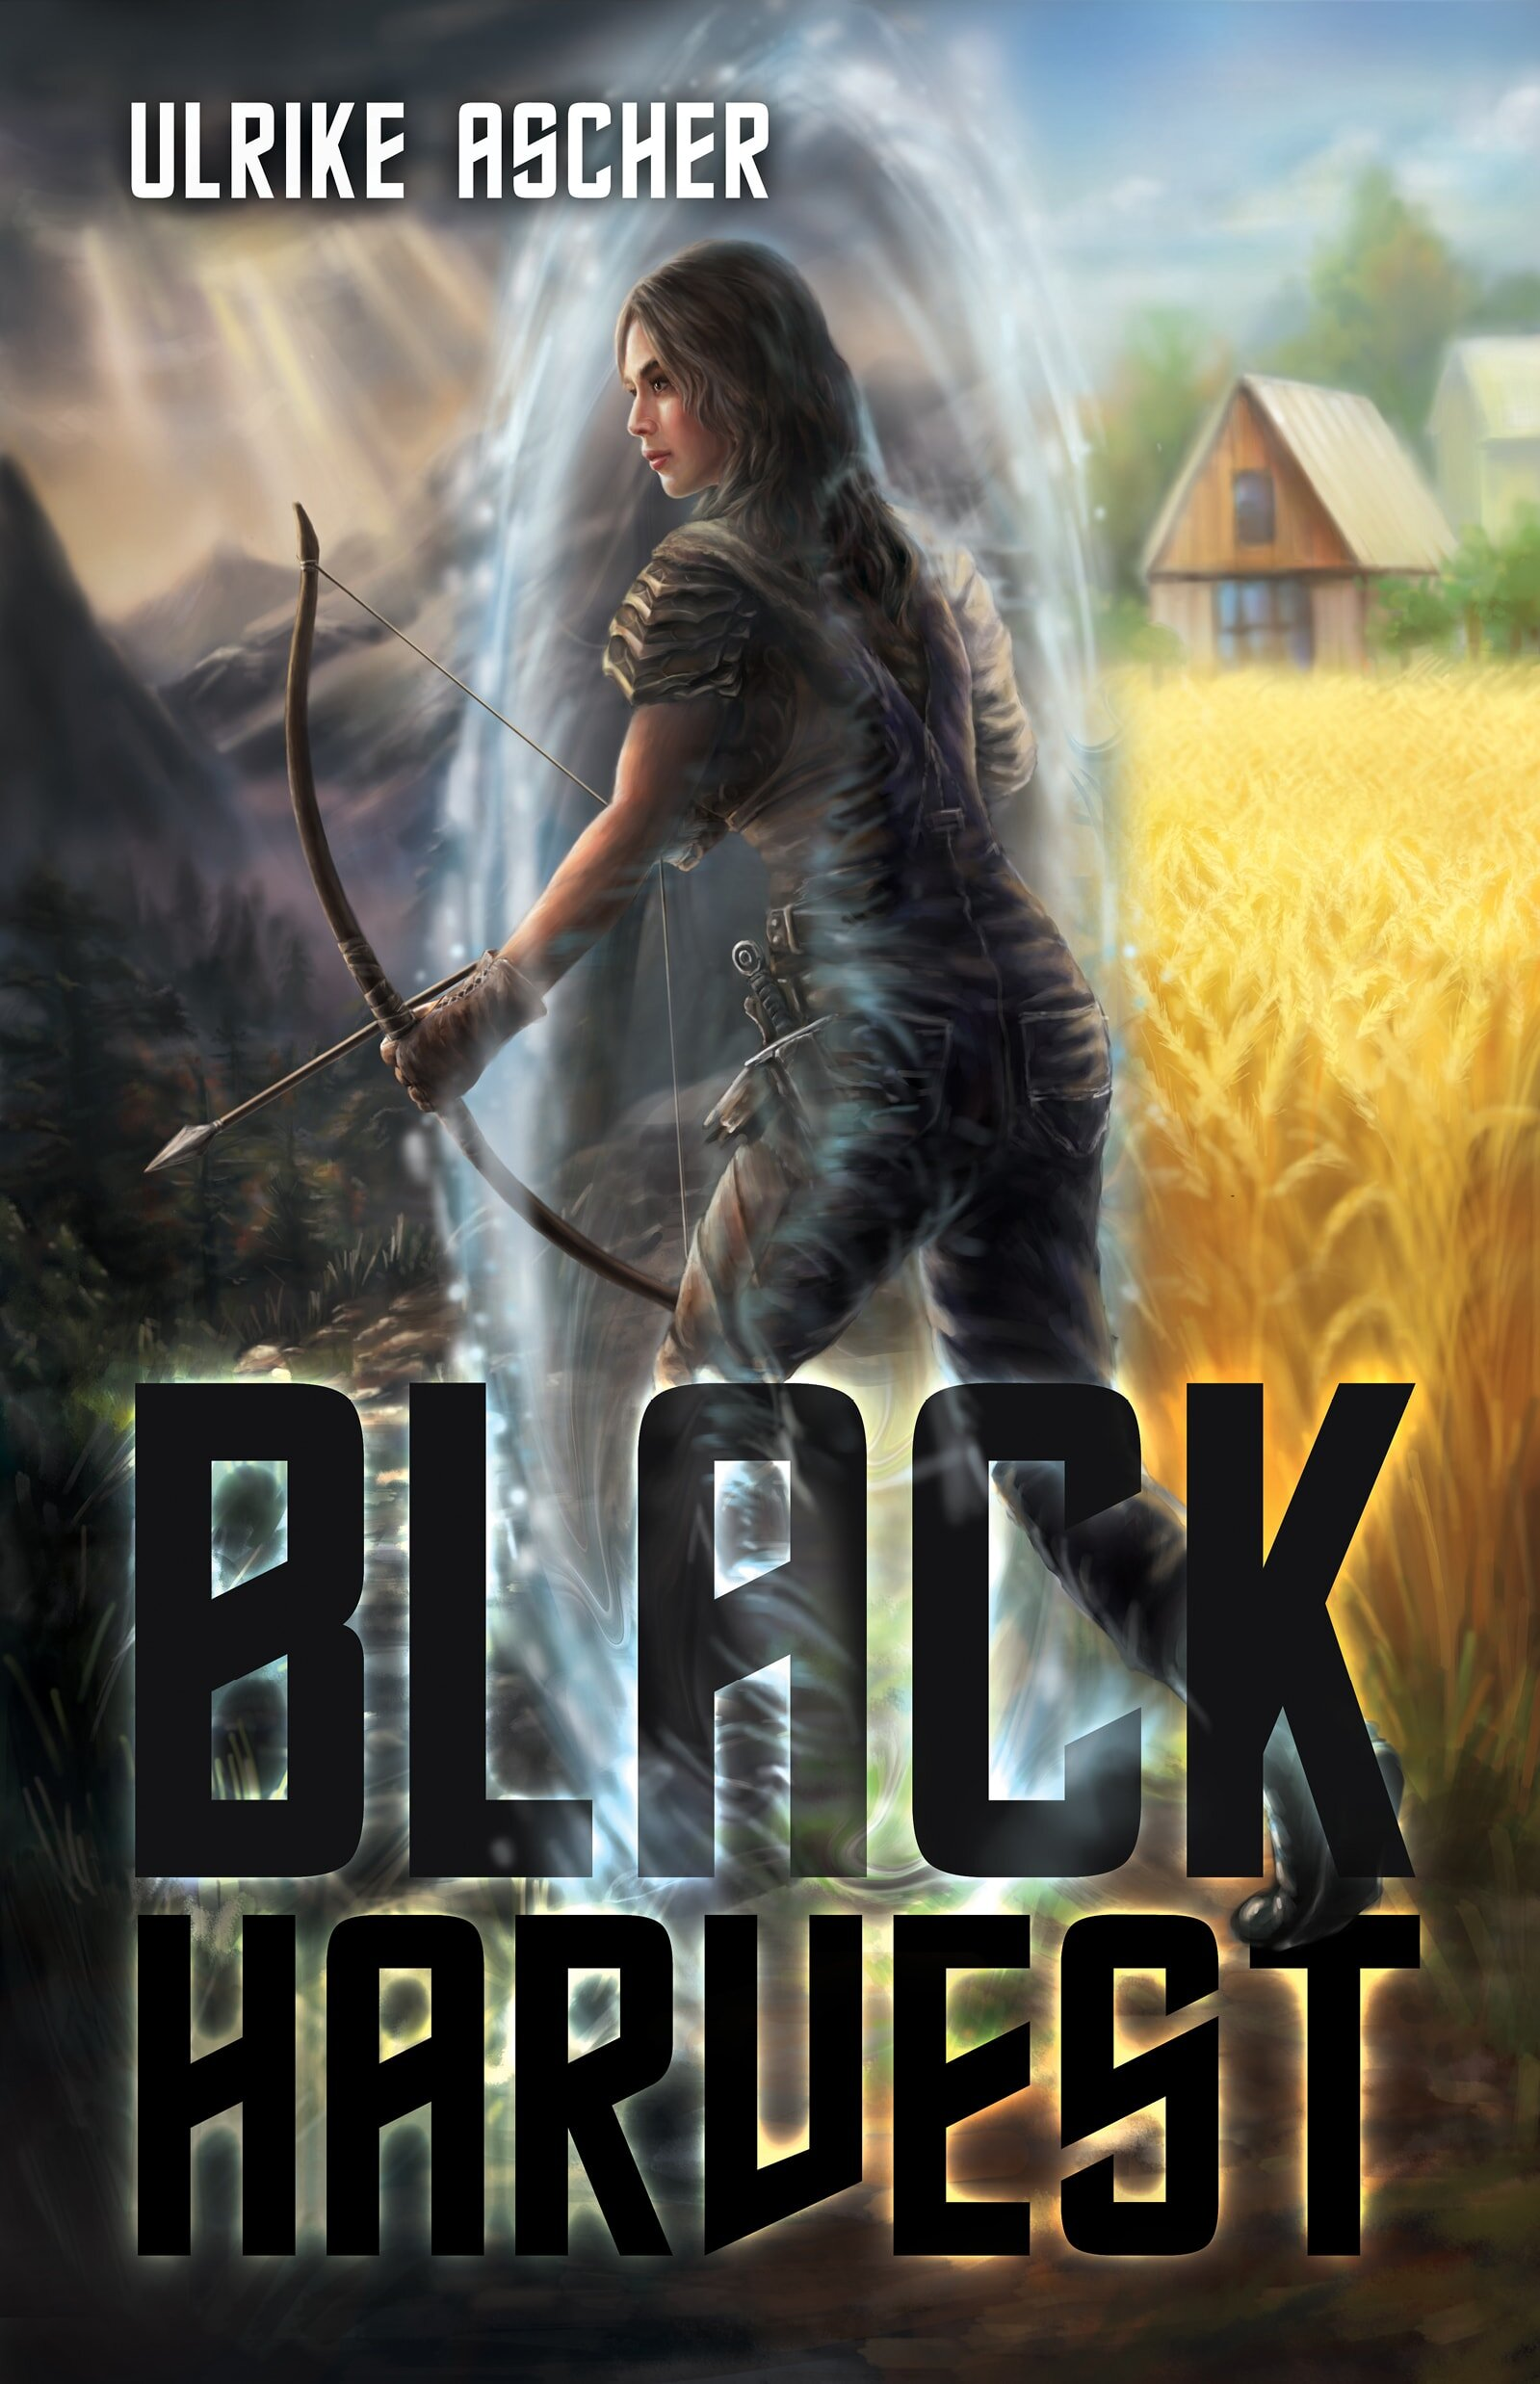 Black Harvest - Ebook-min.jpg